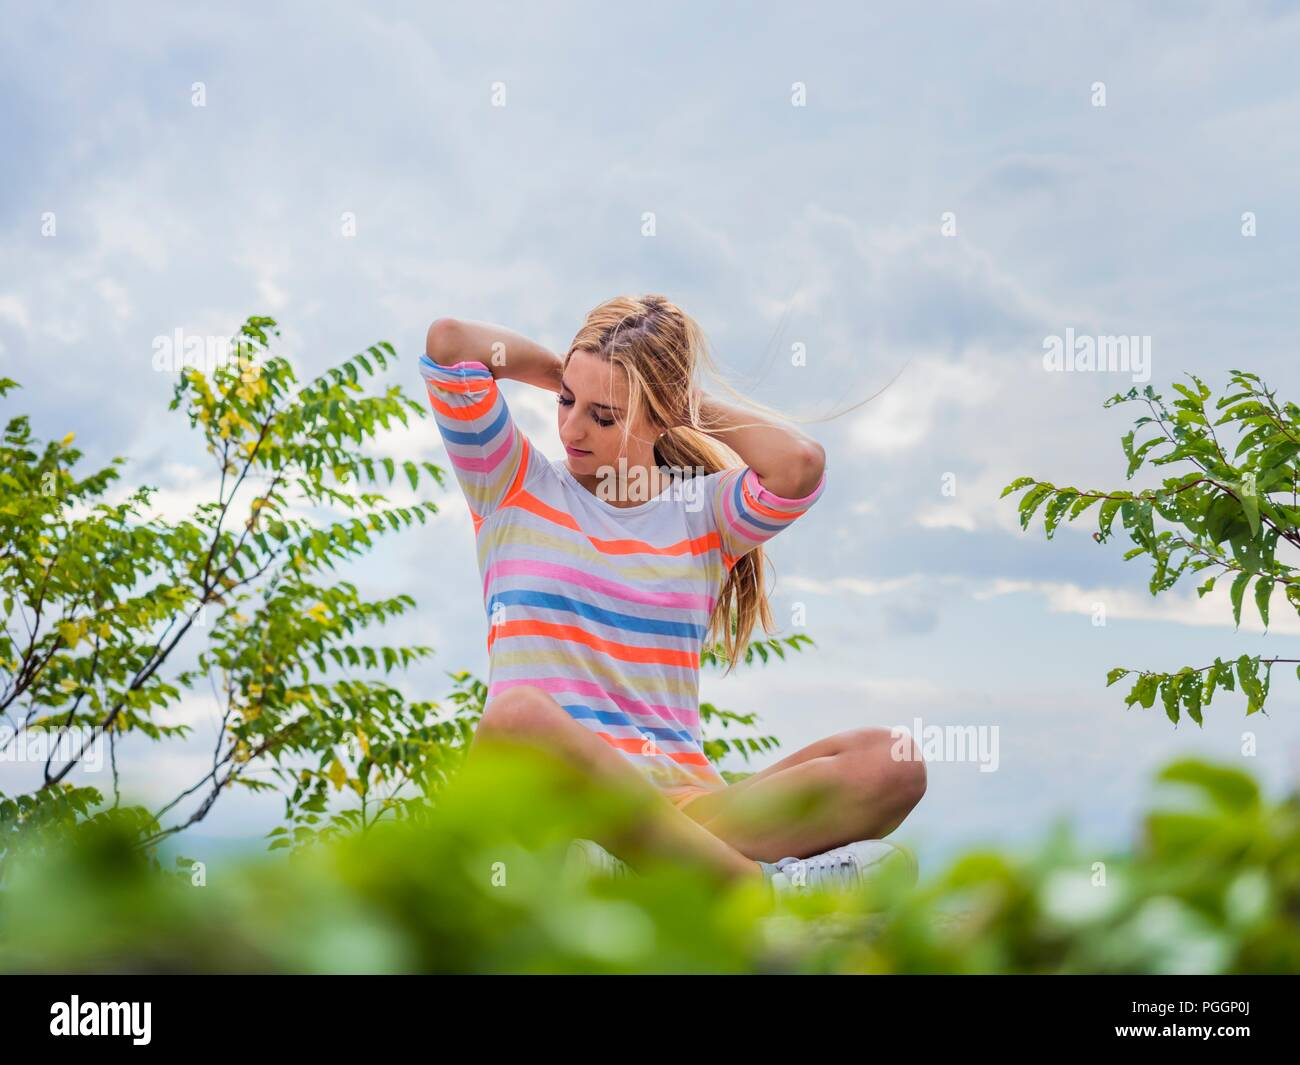 Female adolescent teenager girl outdoors - Stock Image